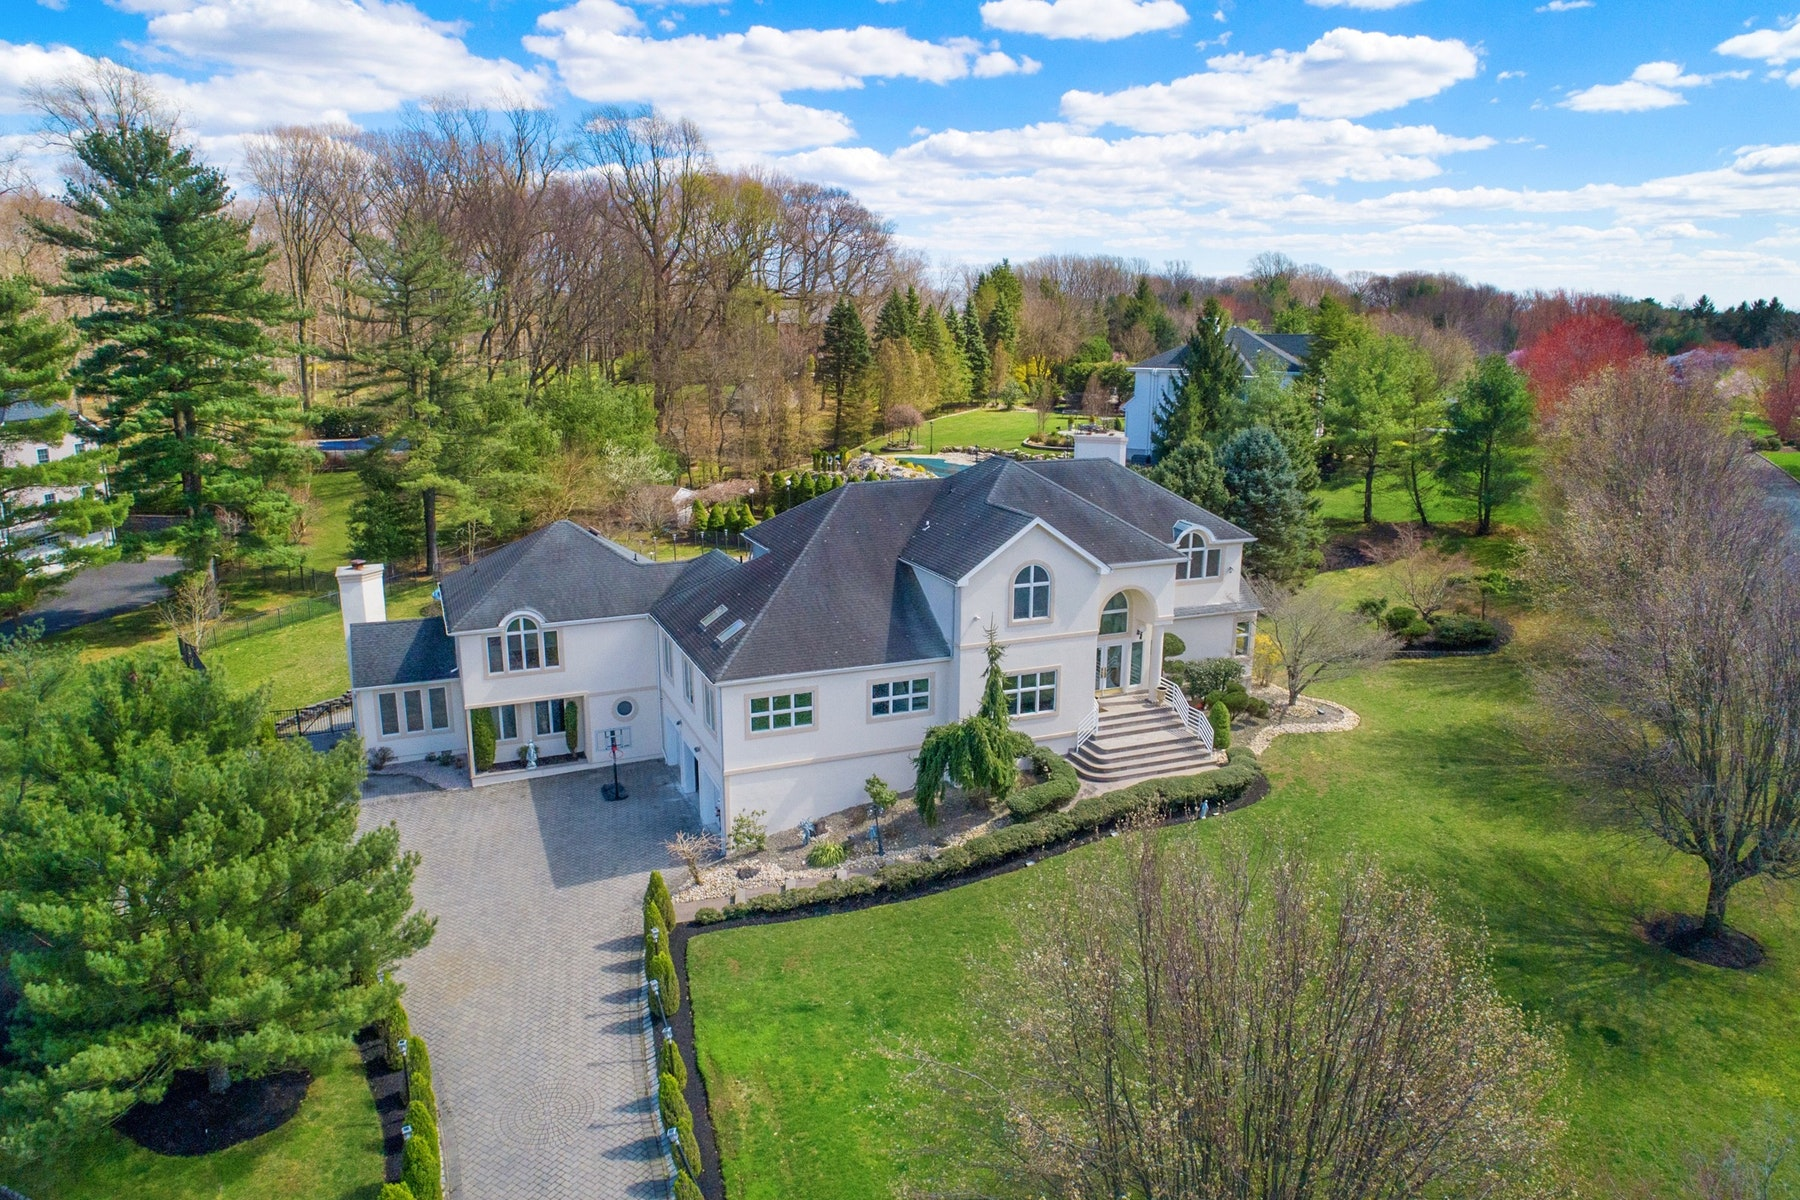 Single Family Homes for Sale at Architecturally Stunning Custom Home 10 Bordeaux Lane Holmdel, New Jersey 07733 United States